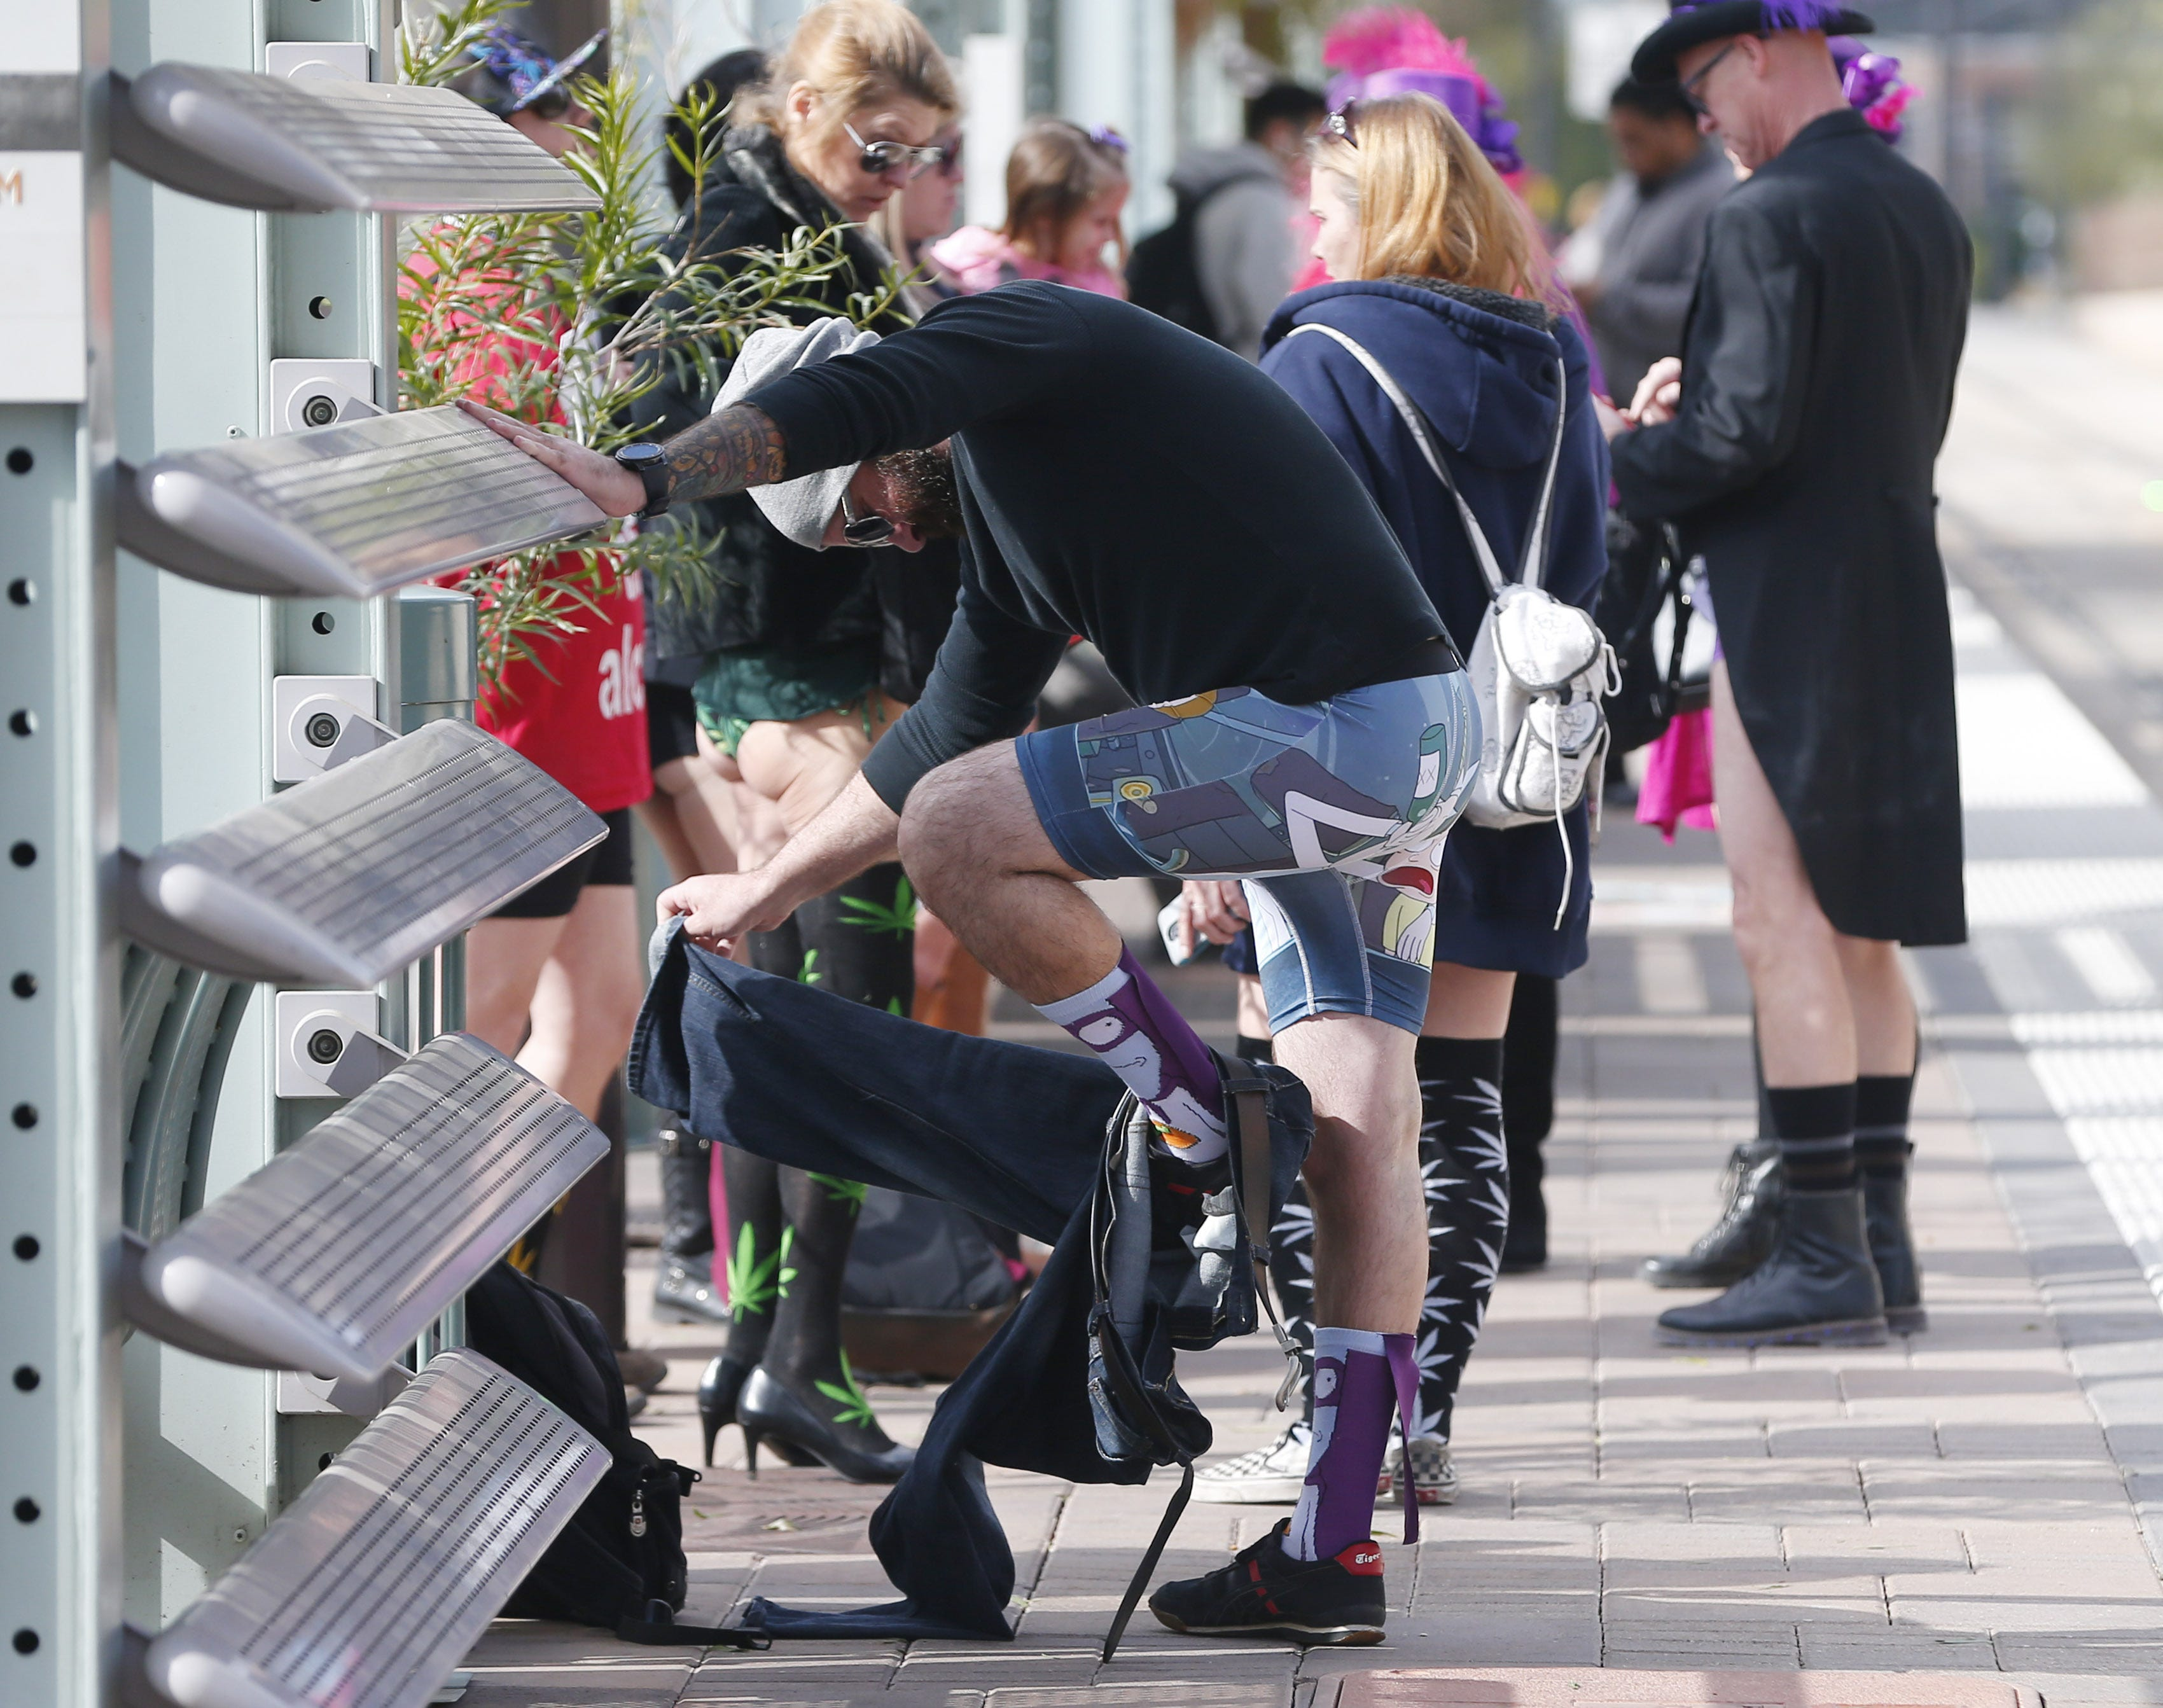 Dozens of light rail riders shed pants in annual tradition